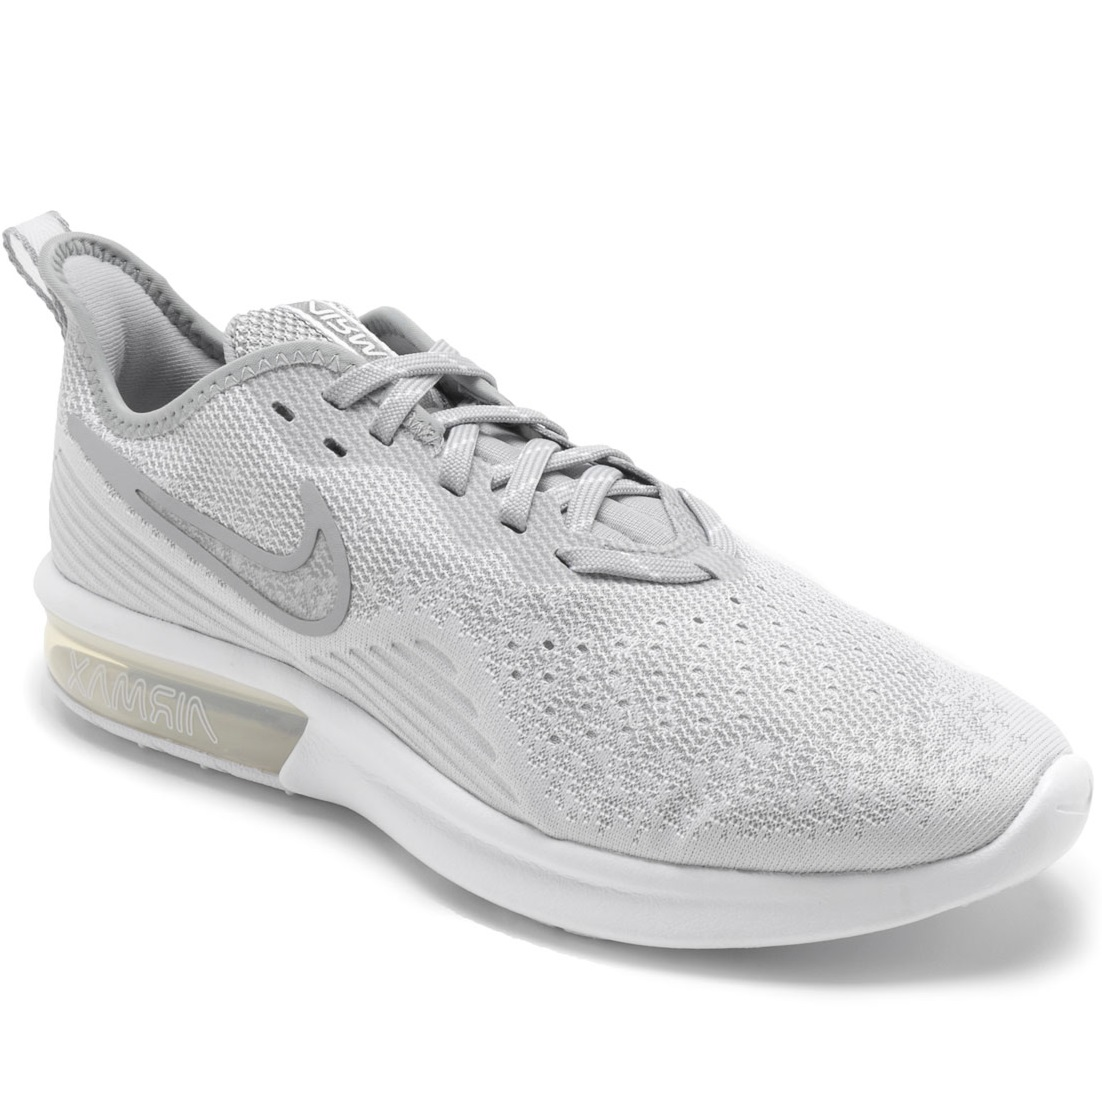 Tenis Nike Air Max Sequent 4 Feminino